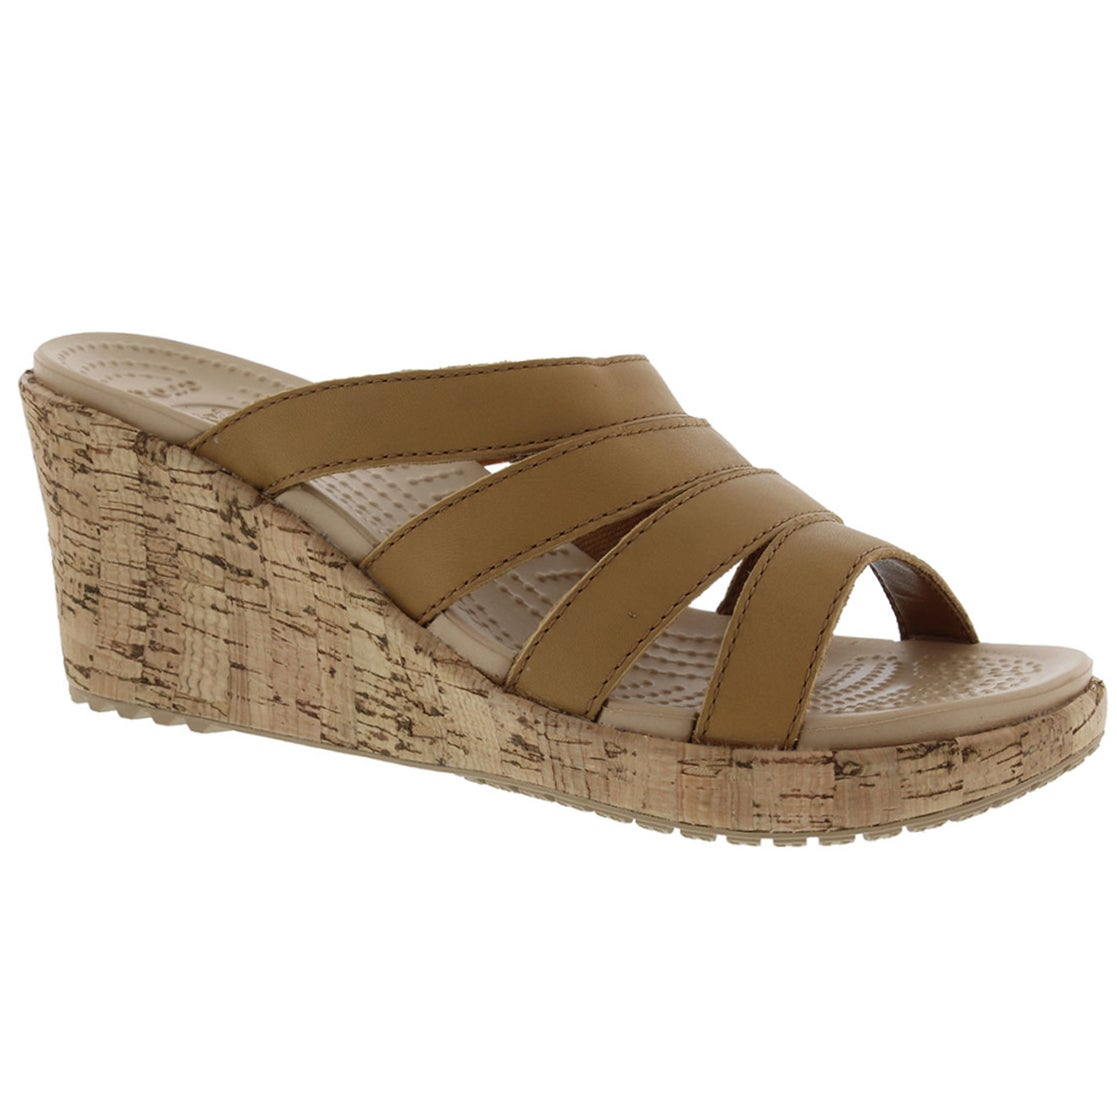 Lds Aleigh cocoa wedge slip on sandal